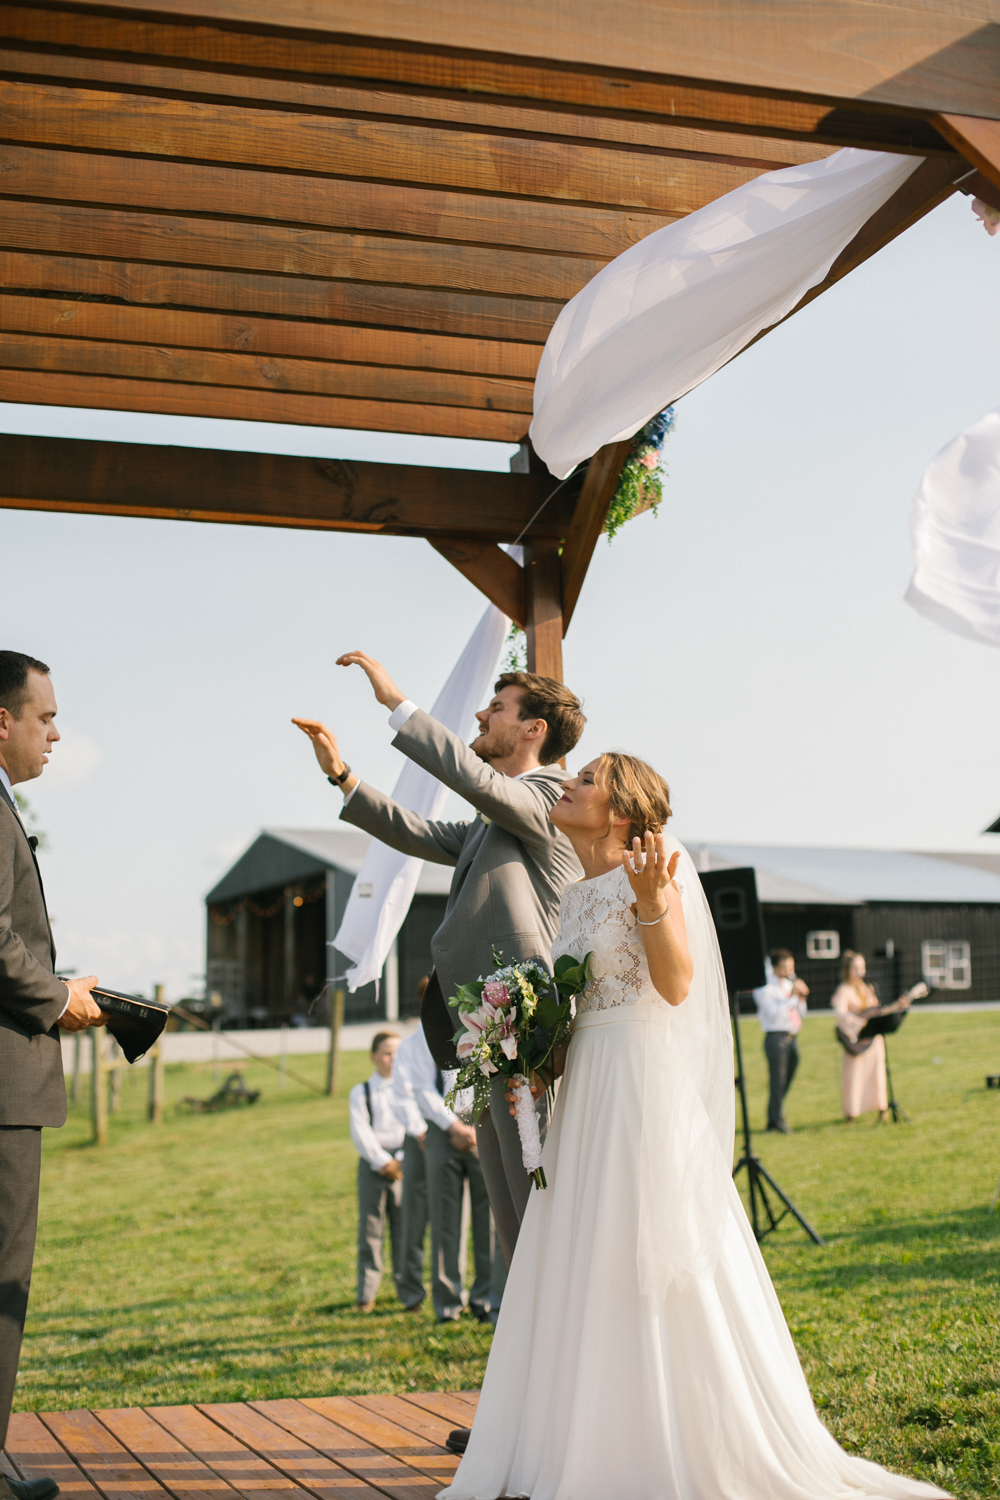 2019.06.01_CraskWedding_Starks-101.jpg